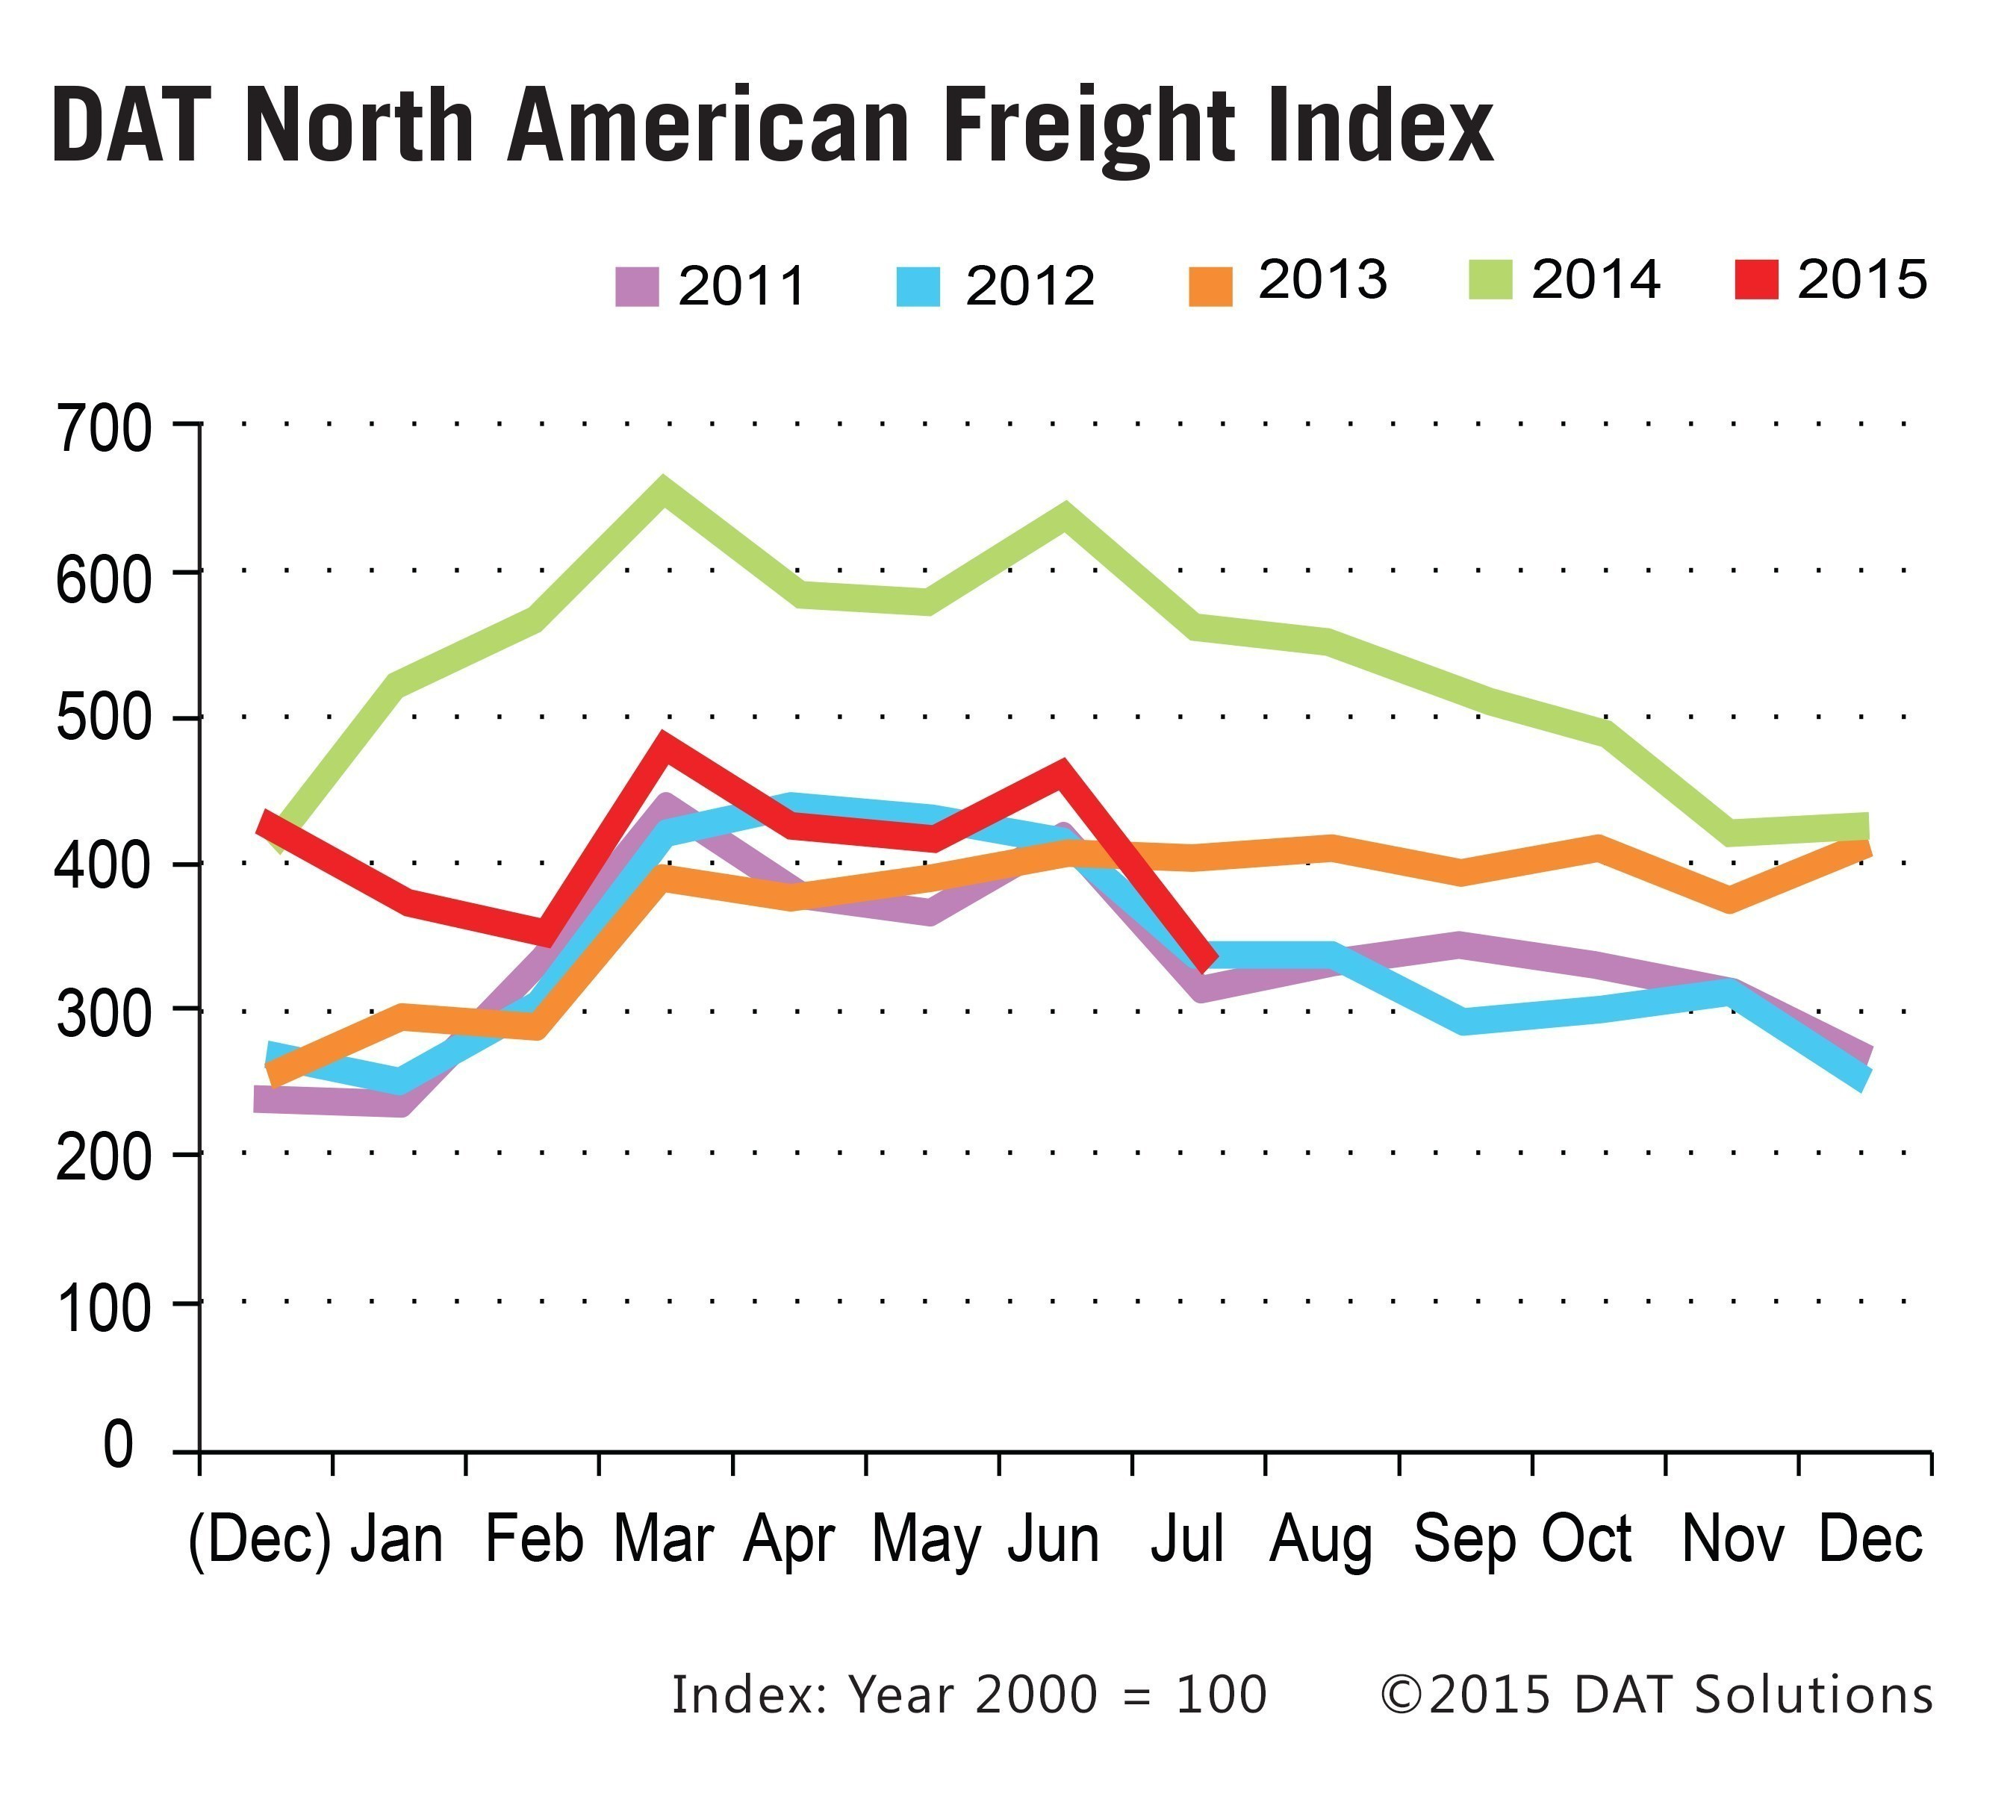 Spot Freight, Rates Down in July: DAT Freight Index